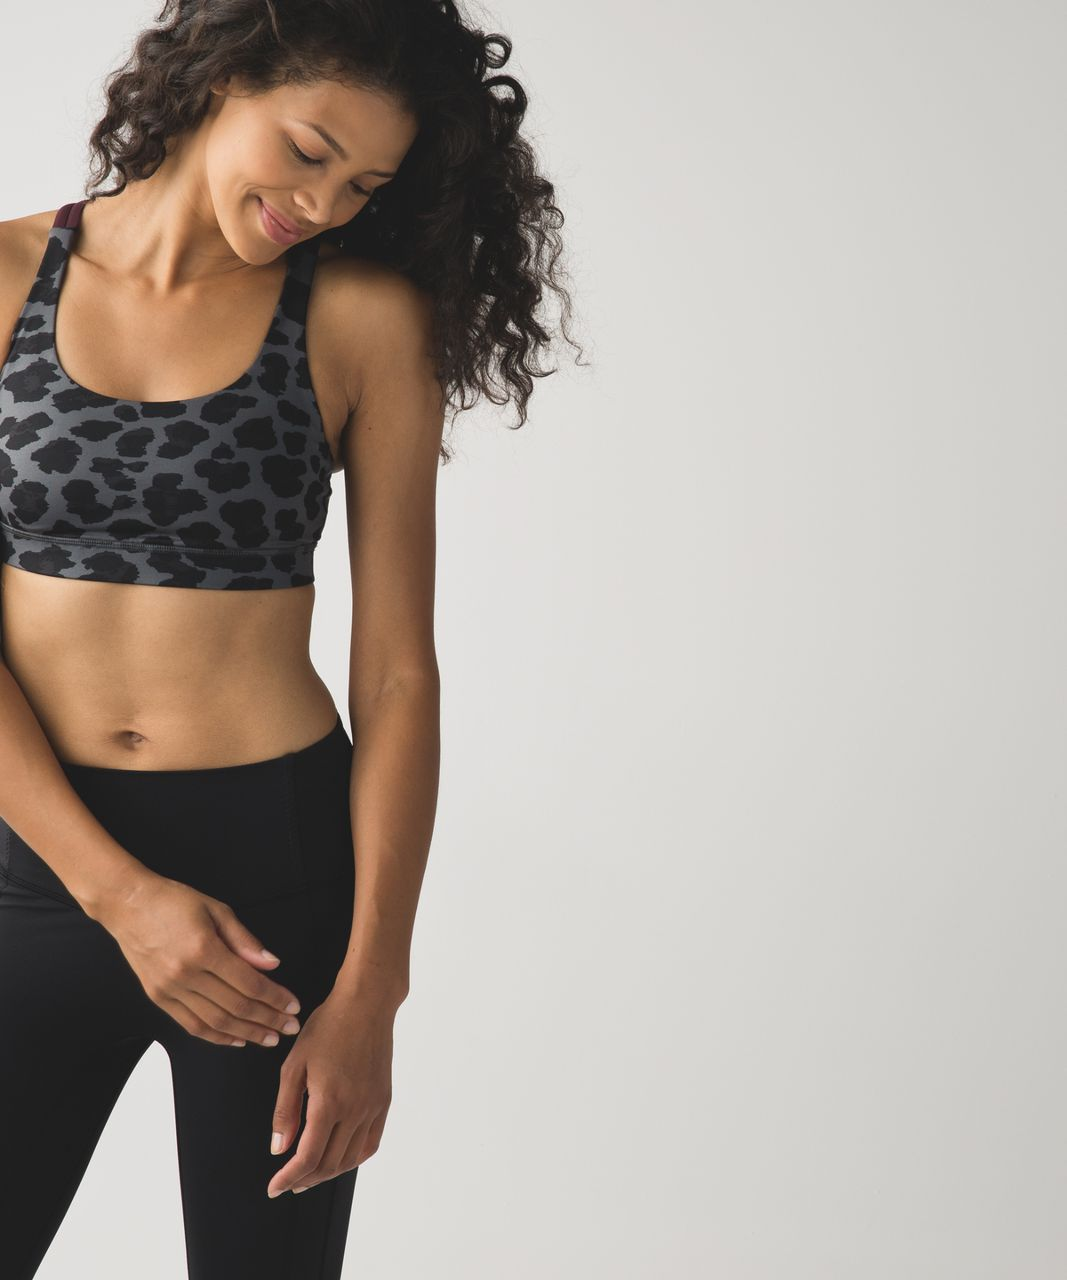 Lululemon Energy Bra - Cherry Cheetah Dark Slate Black / Bordeaux Drama / Black